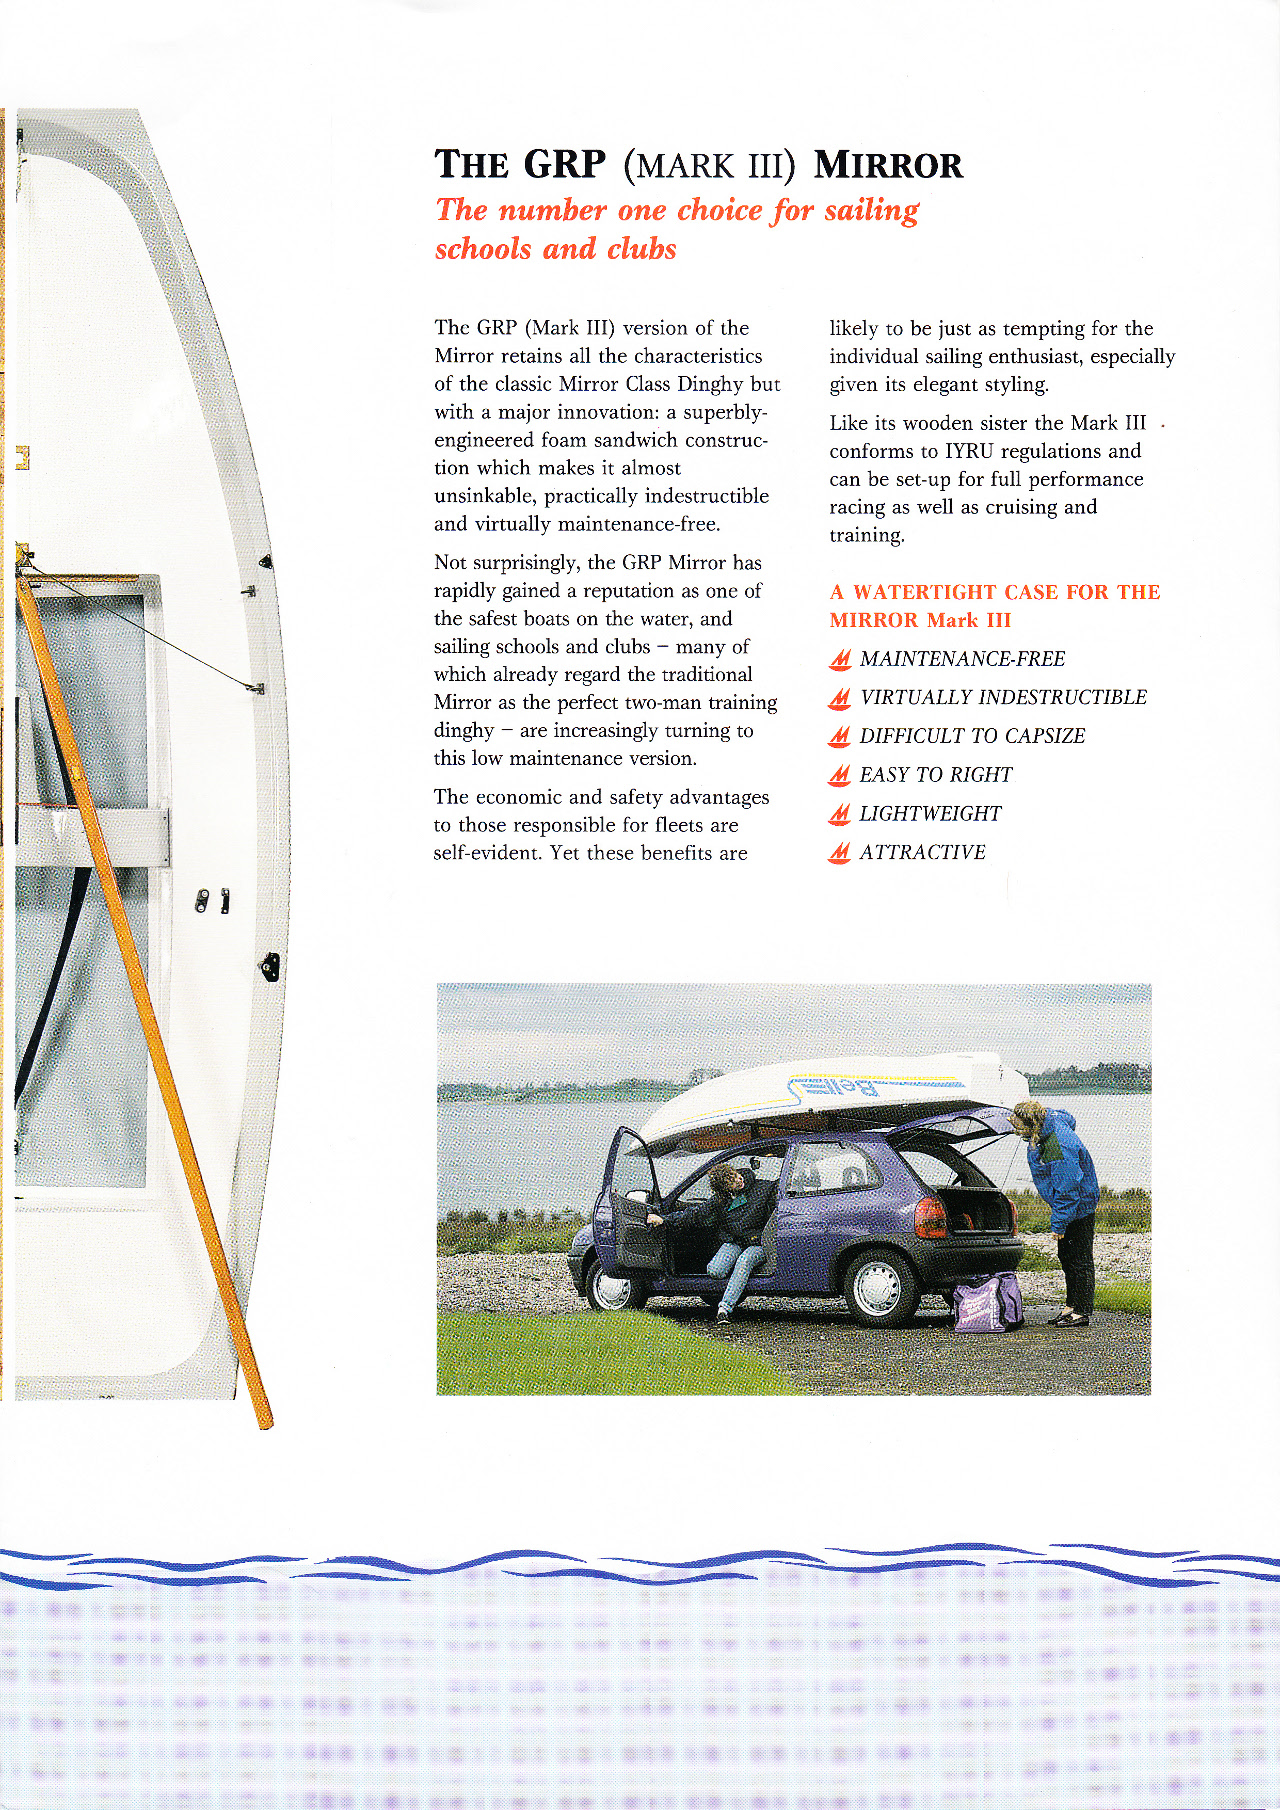 A page from a Mirror publicity brochue featuring a GRP Mirror dinghy